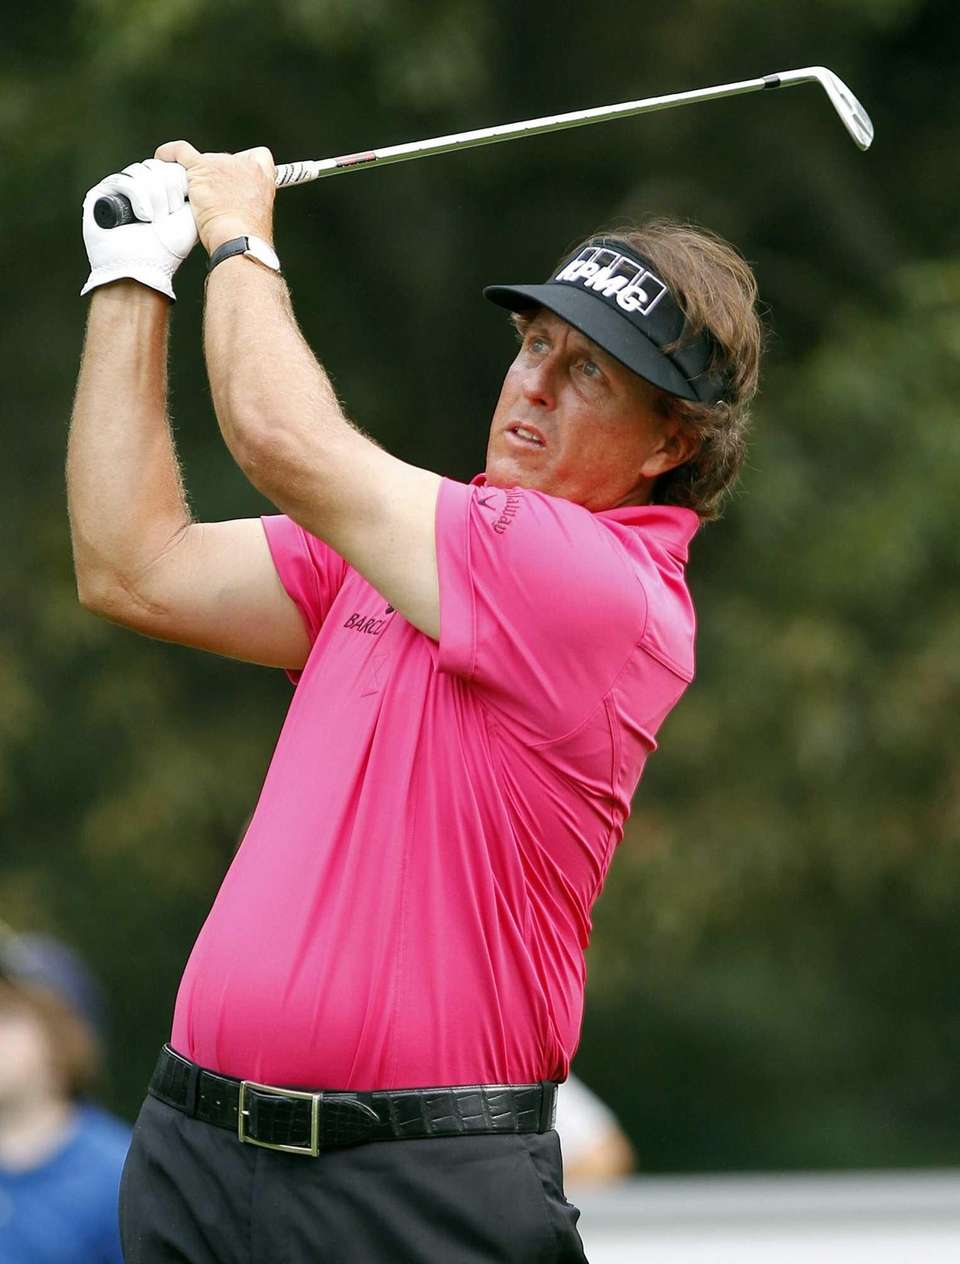 Phil Mickelson hits a tee shot on the